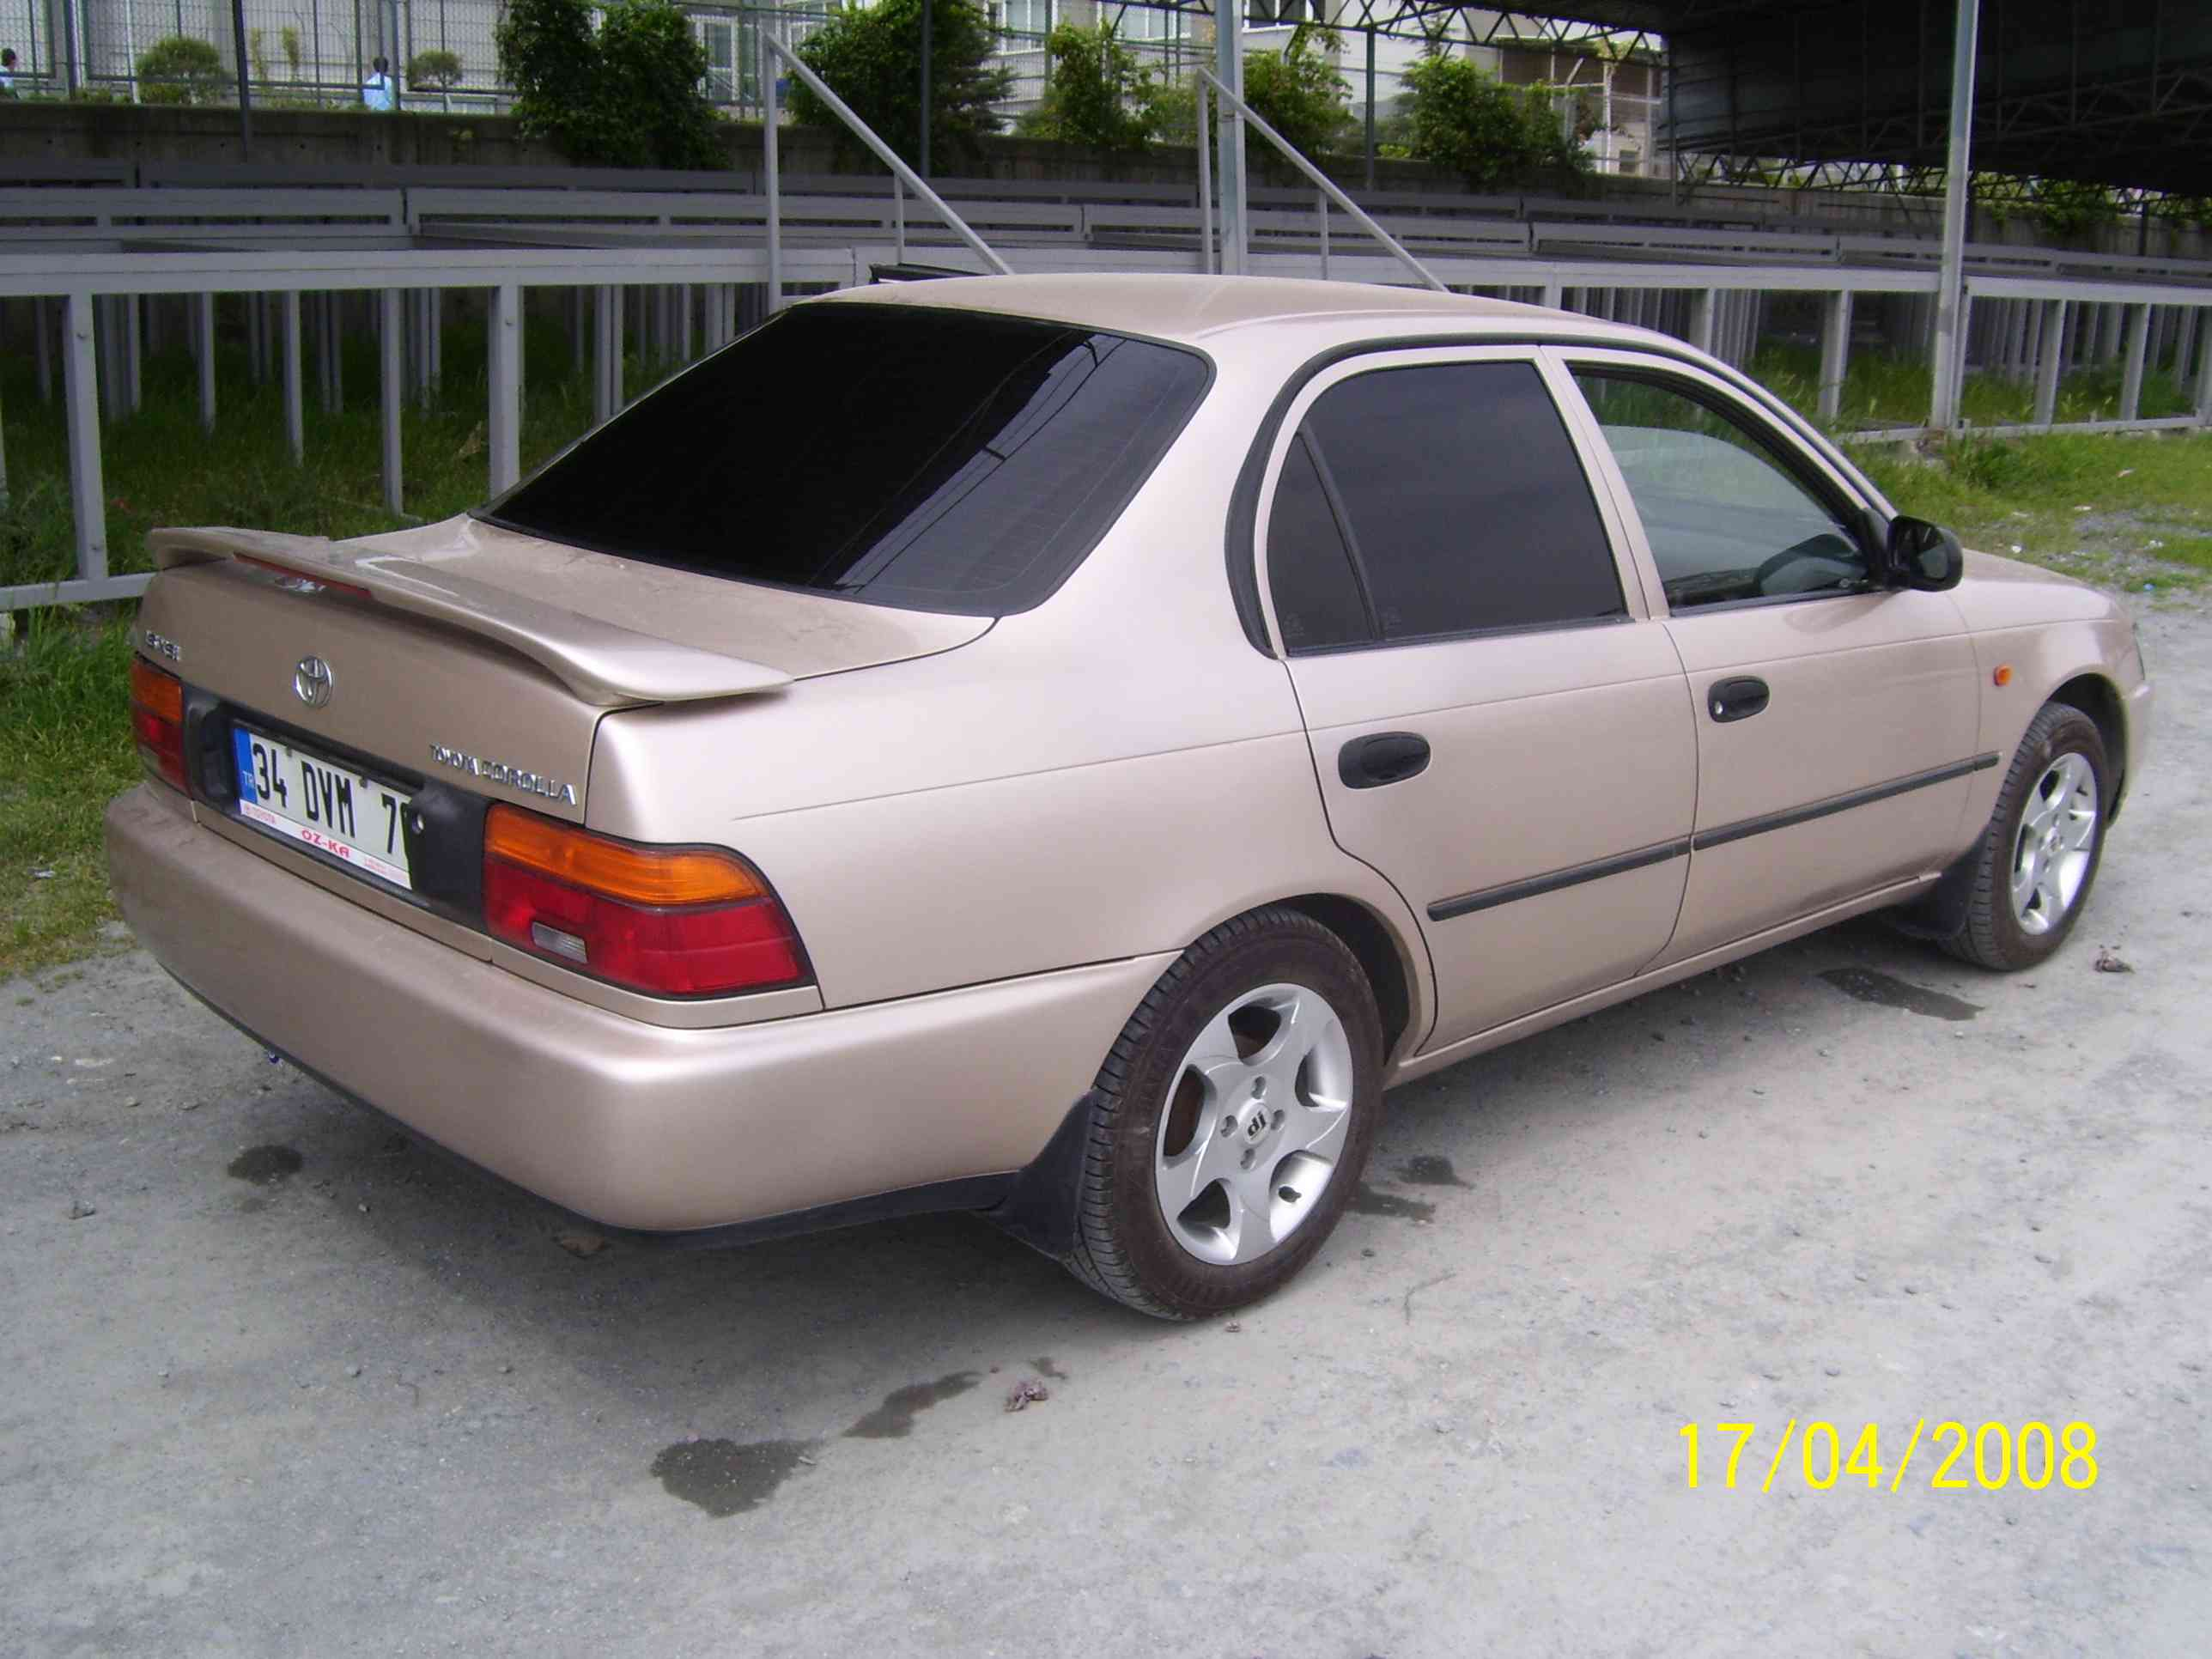 &&& 92---98 efsane toyota corolla klubÜ &&&page 97 of 481